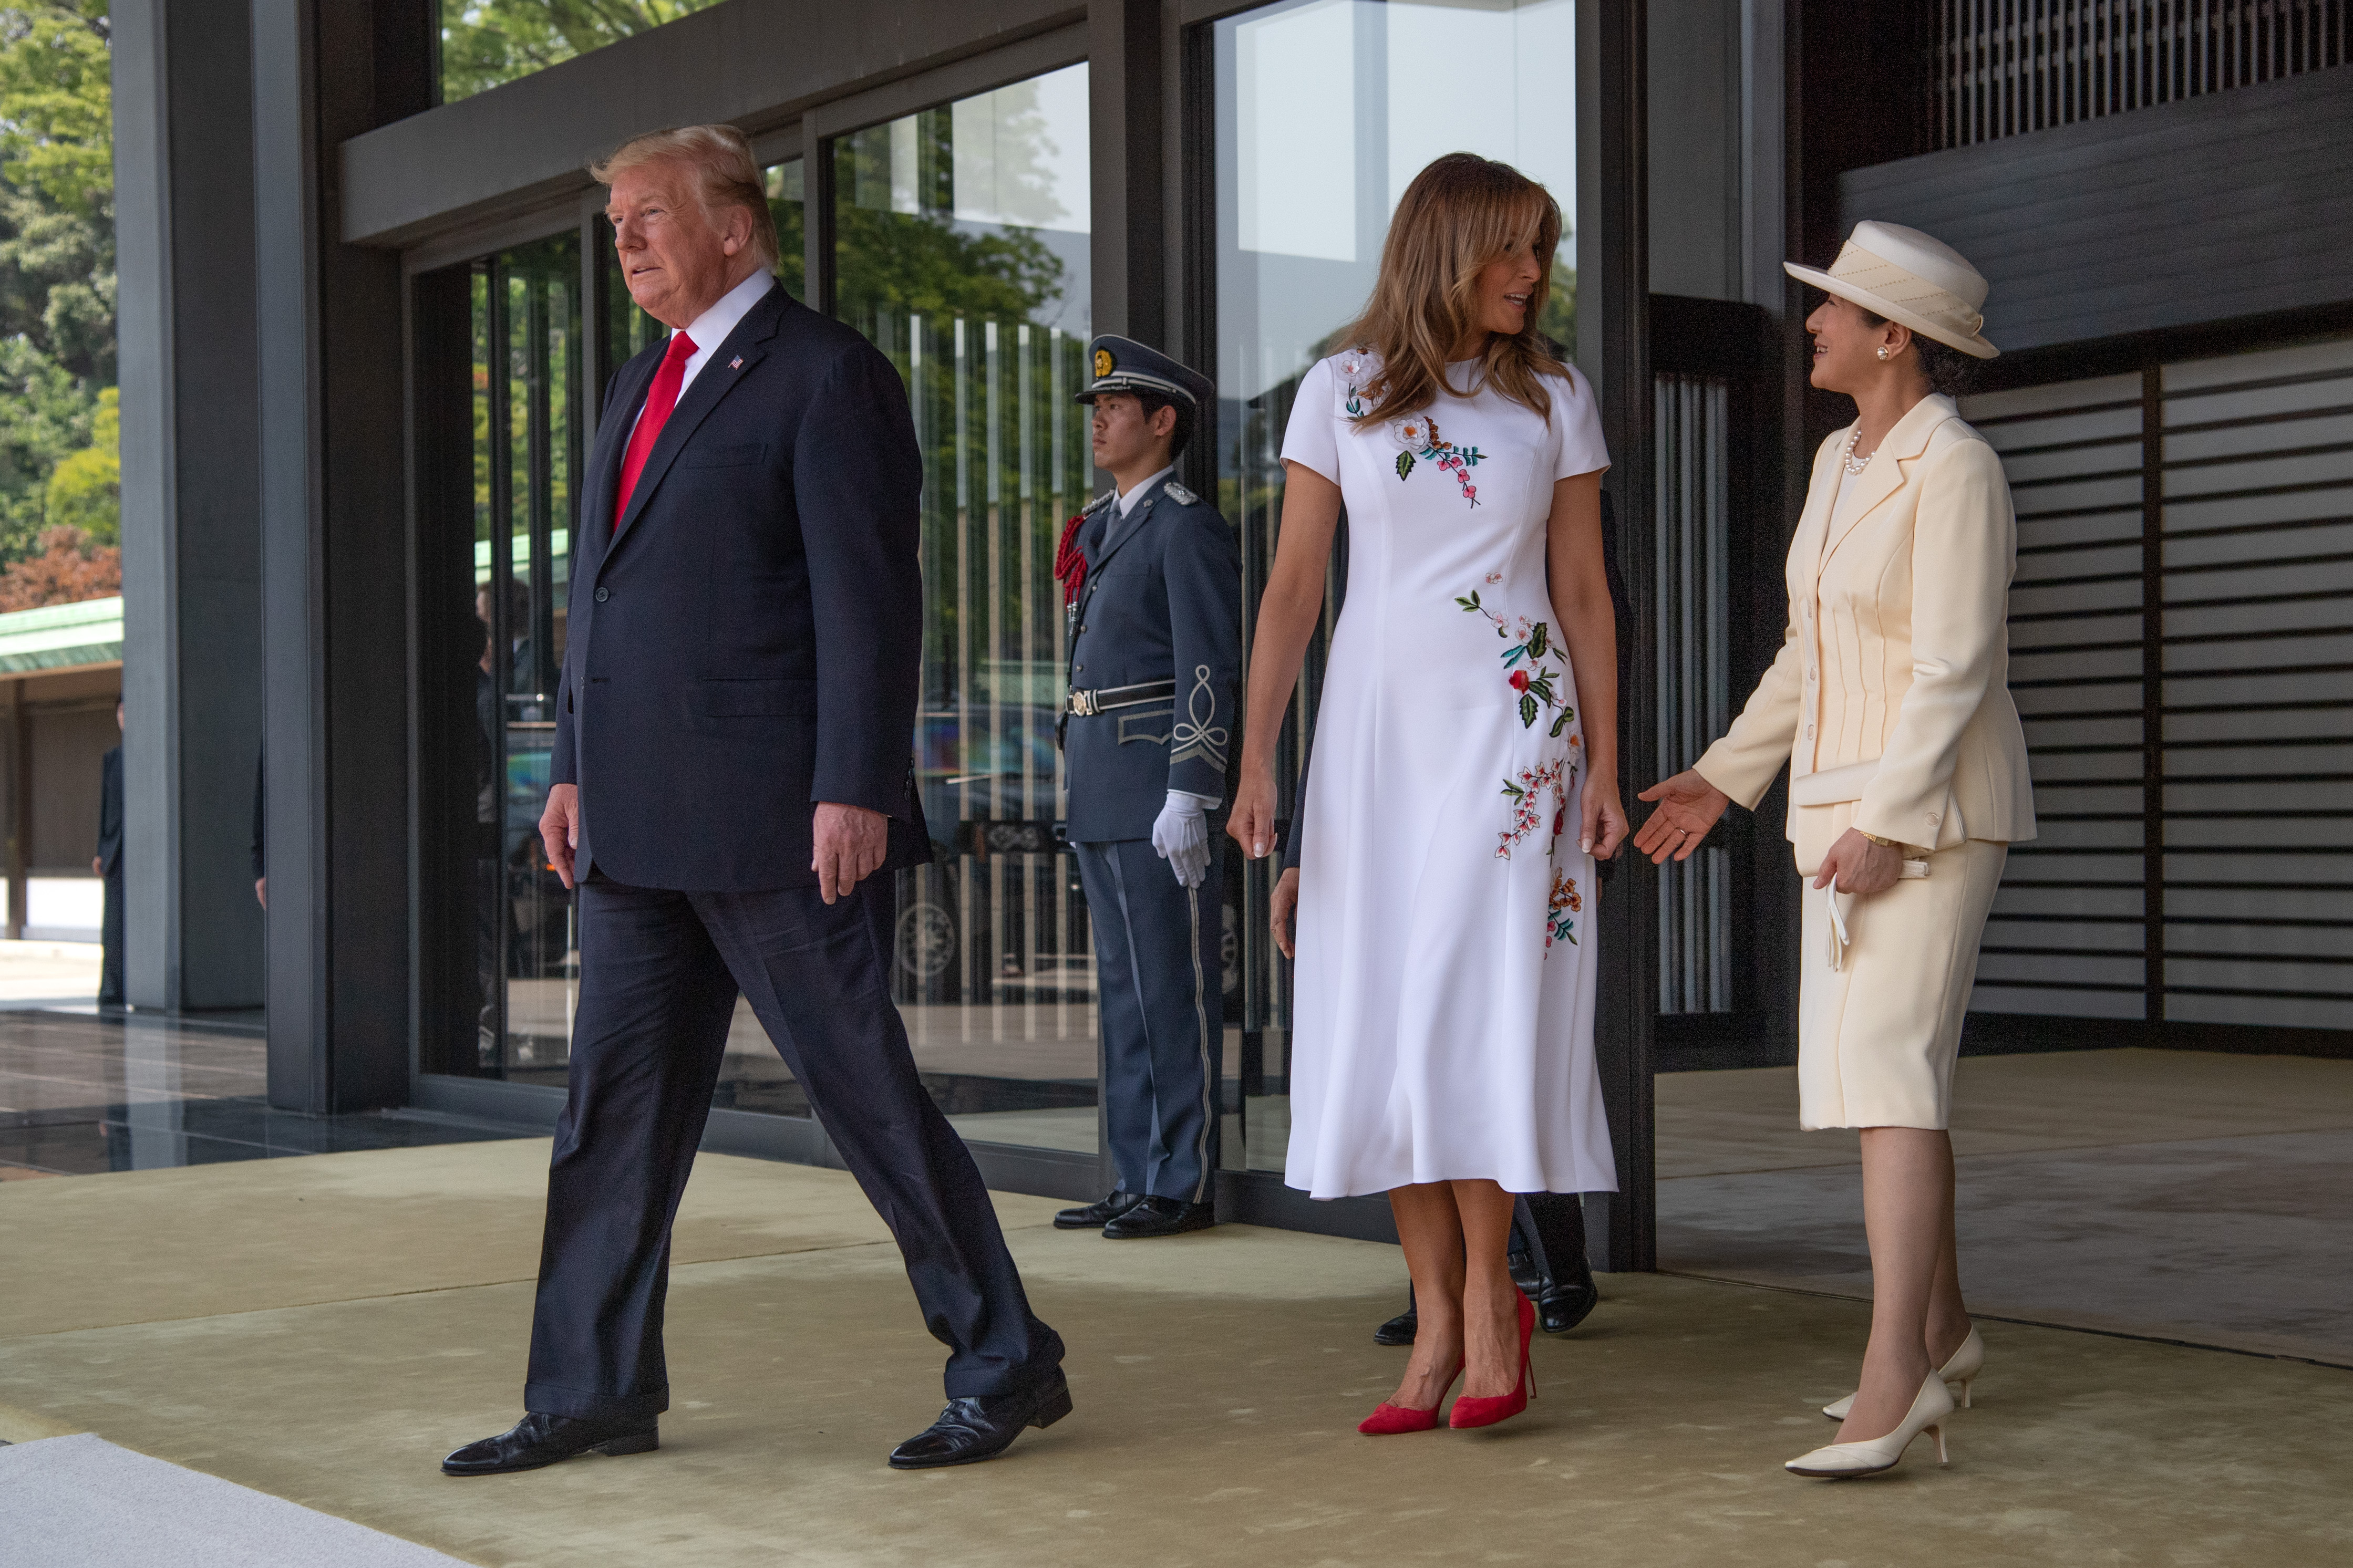 US President Donald Trump and first lady Melania Trump leave after meeting Emperor Naruhito (obscured) and empress Masako at the Imperial Palace on May 27, 2019, in Tokyo, Japan.